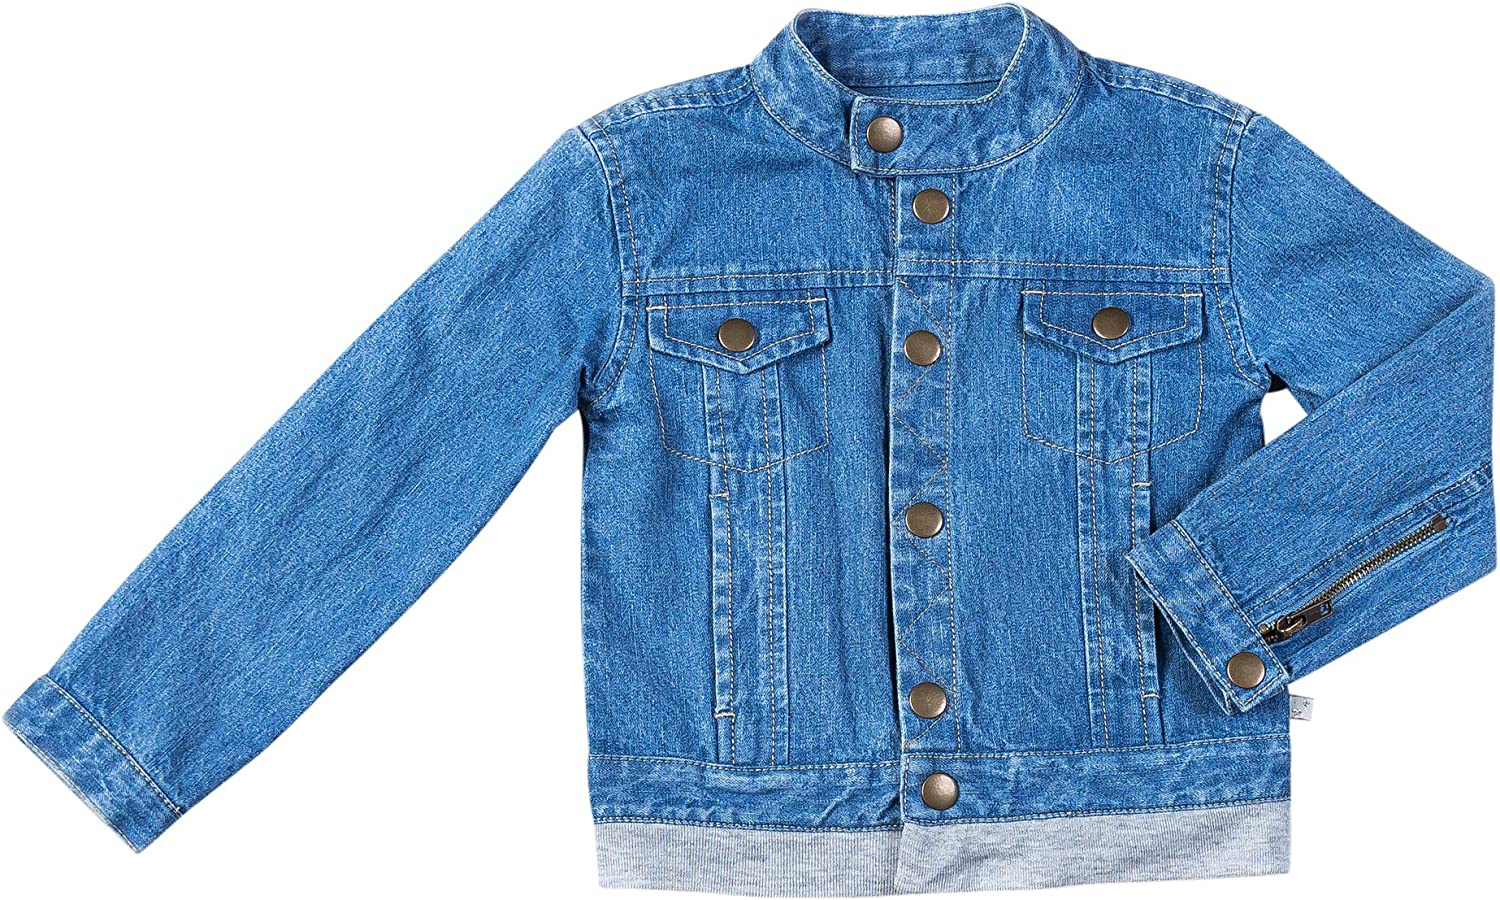 Kinderkind Kids Toddler Boy's Denim Moto Jacket - Casual Outwear Button Down Jeans Coat with 100% Cotton